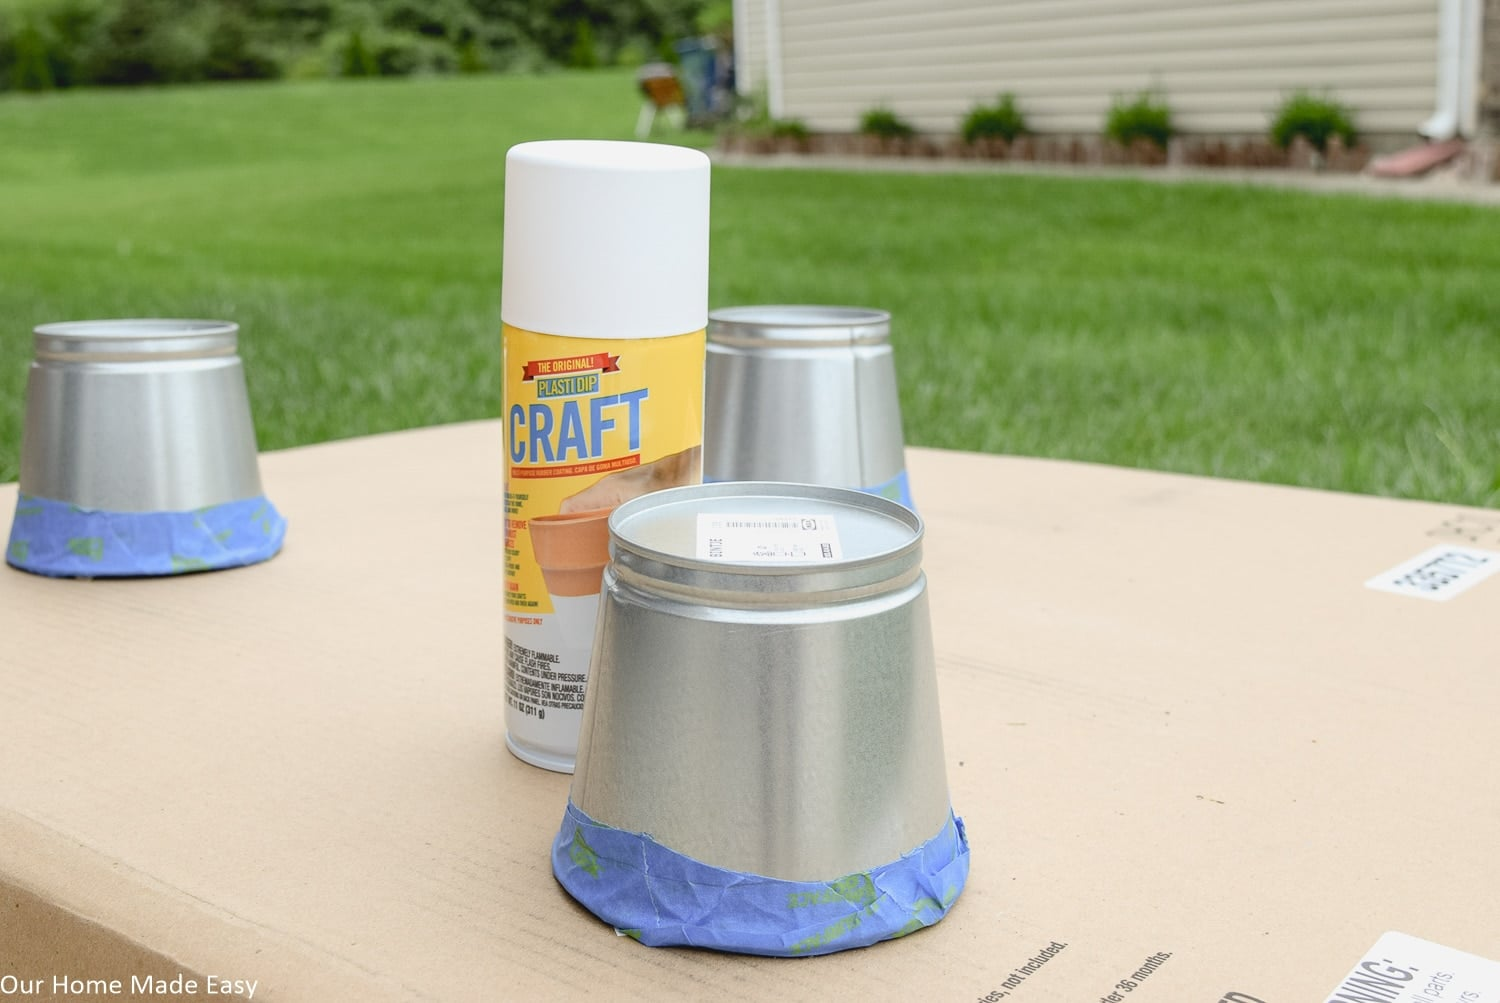 How it's time to use Plasti Dip spray paint to give these mental planters a paint-dipped effect